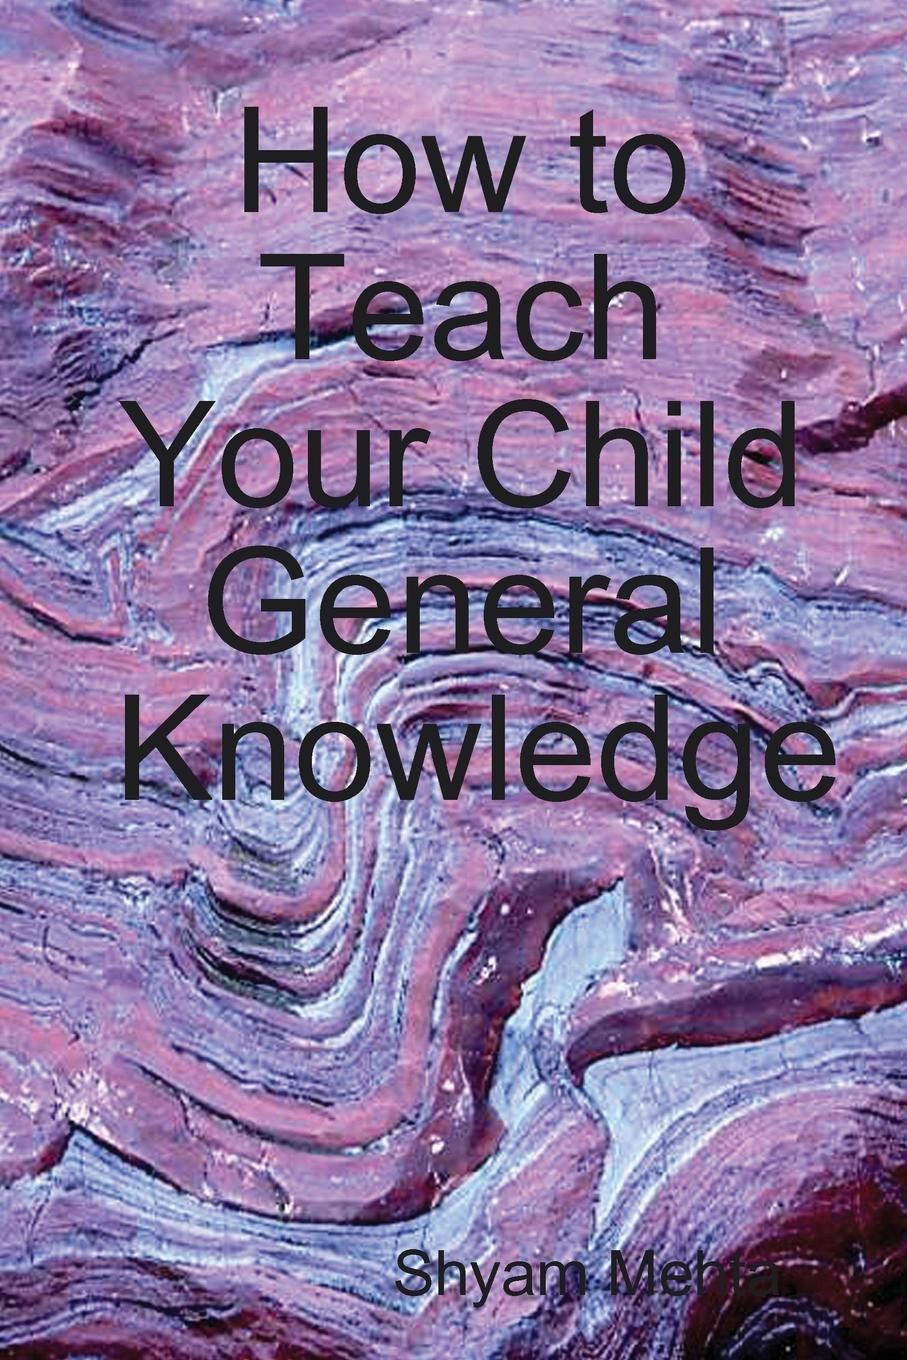 Shyam Mehta How to Teach Your Child General Knowledge shyam mehta stories for children spanish edition